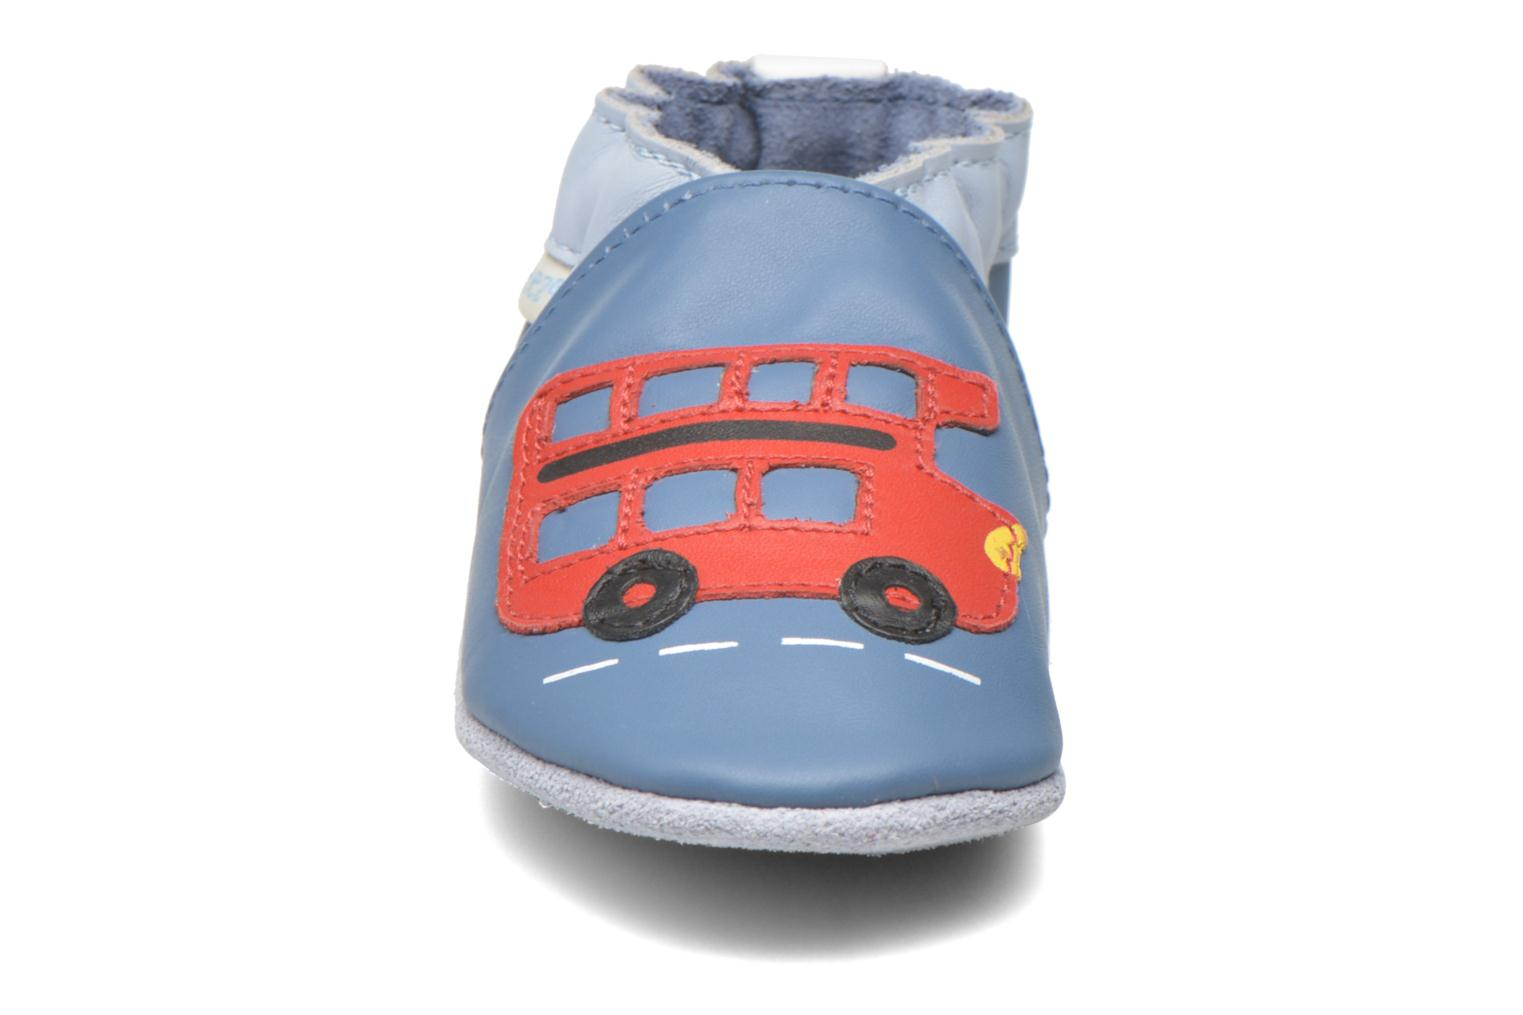 London Street Bleu denim